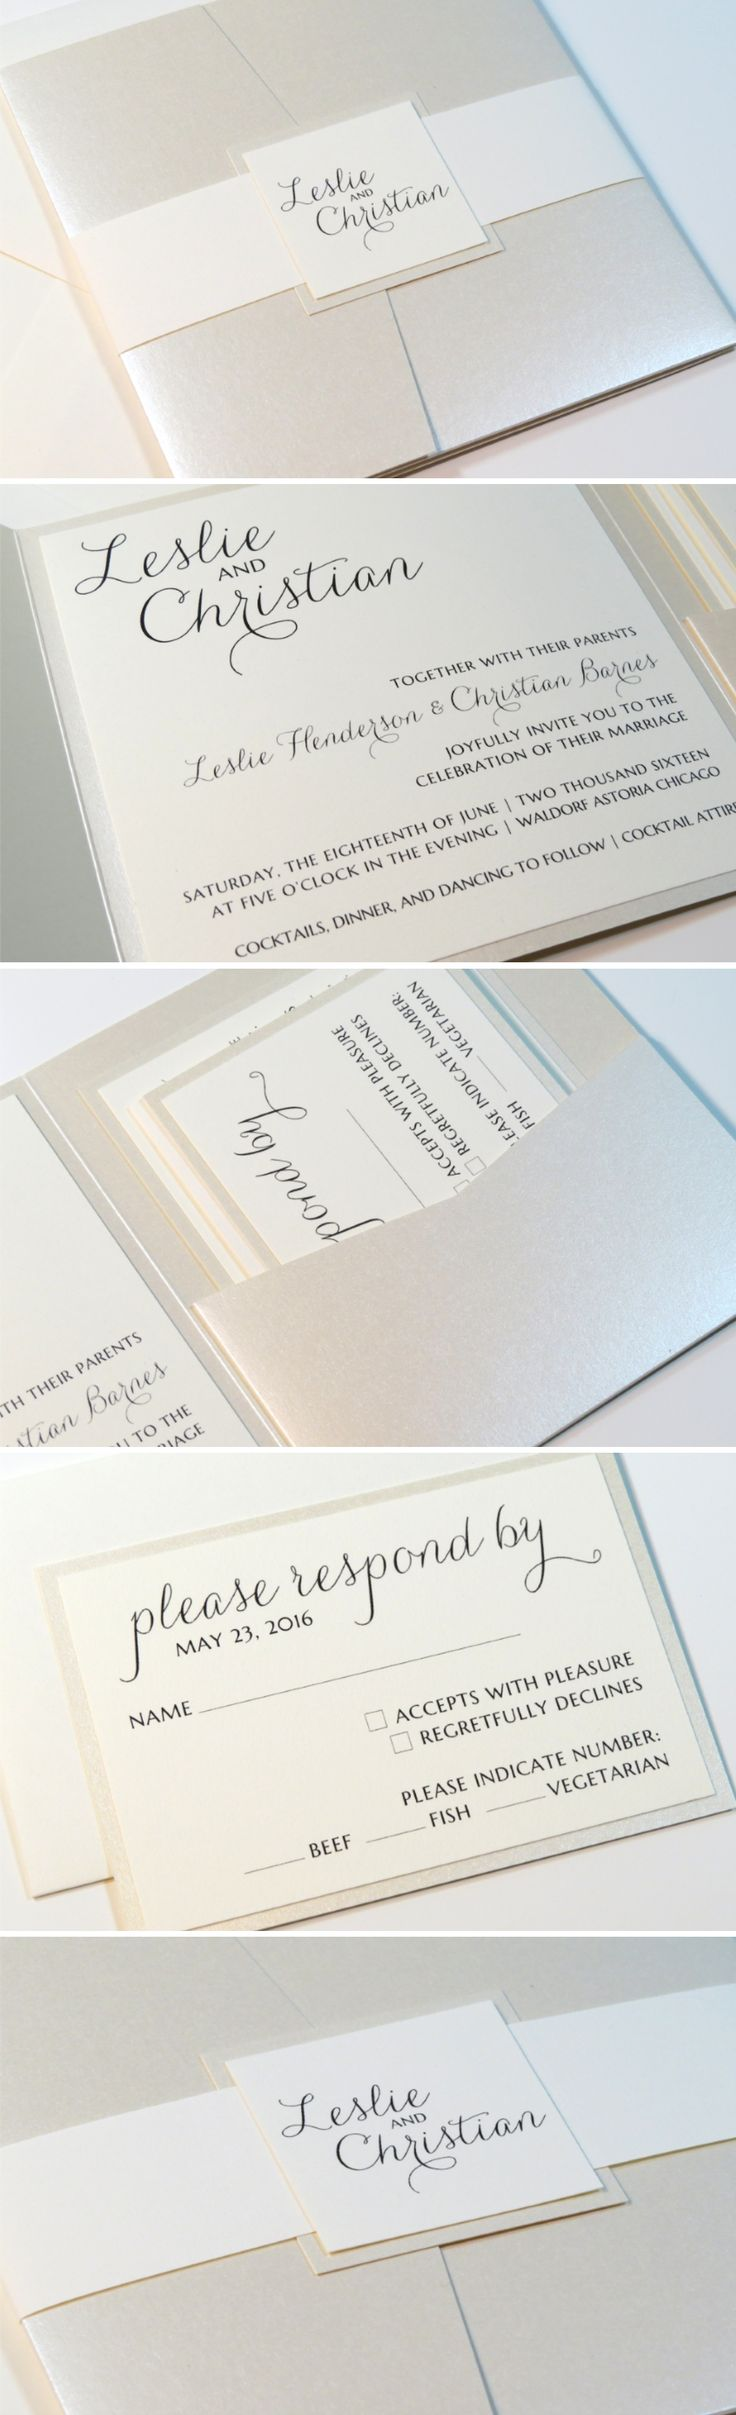 654 Best Cards Wedding Invites Images On Pinterest Invitation